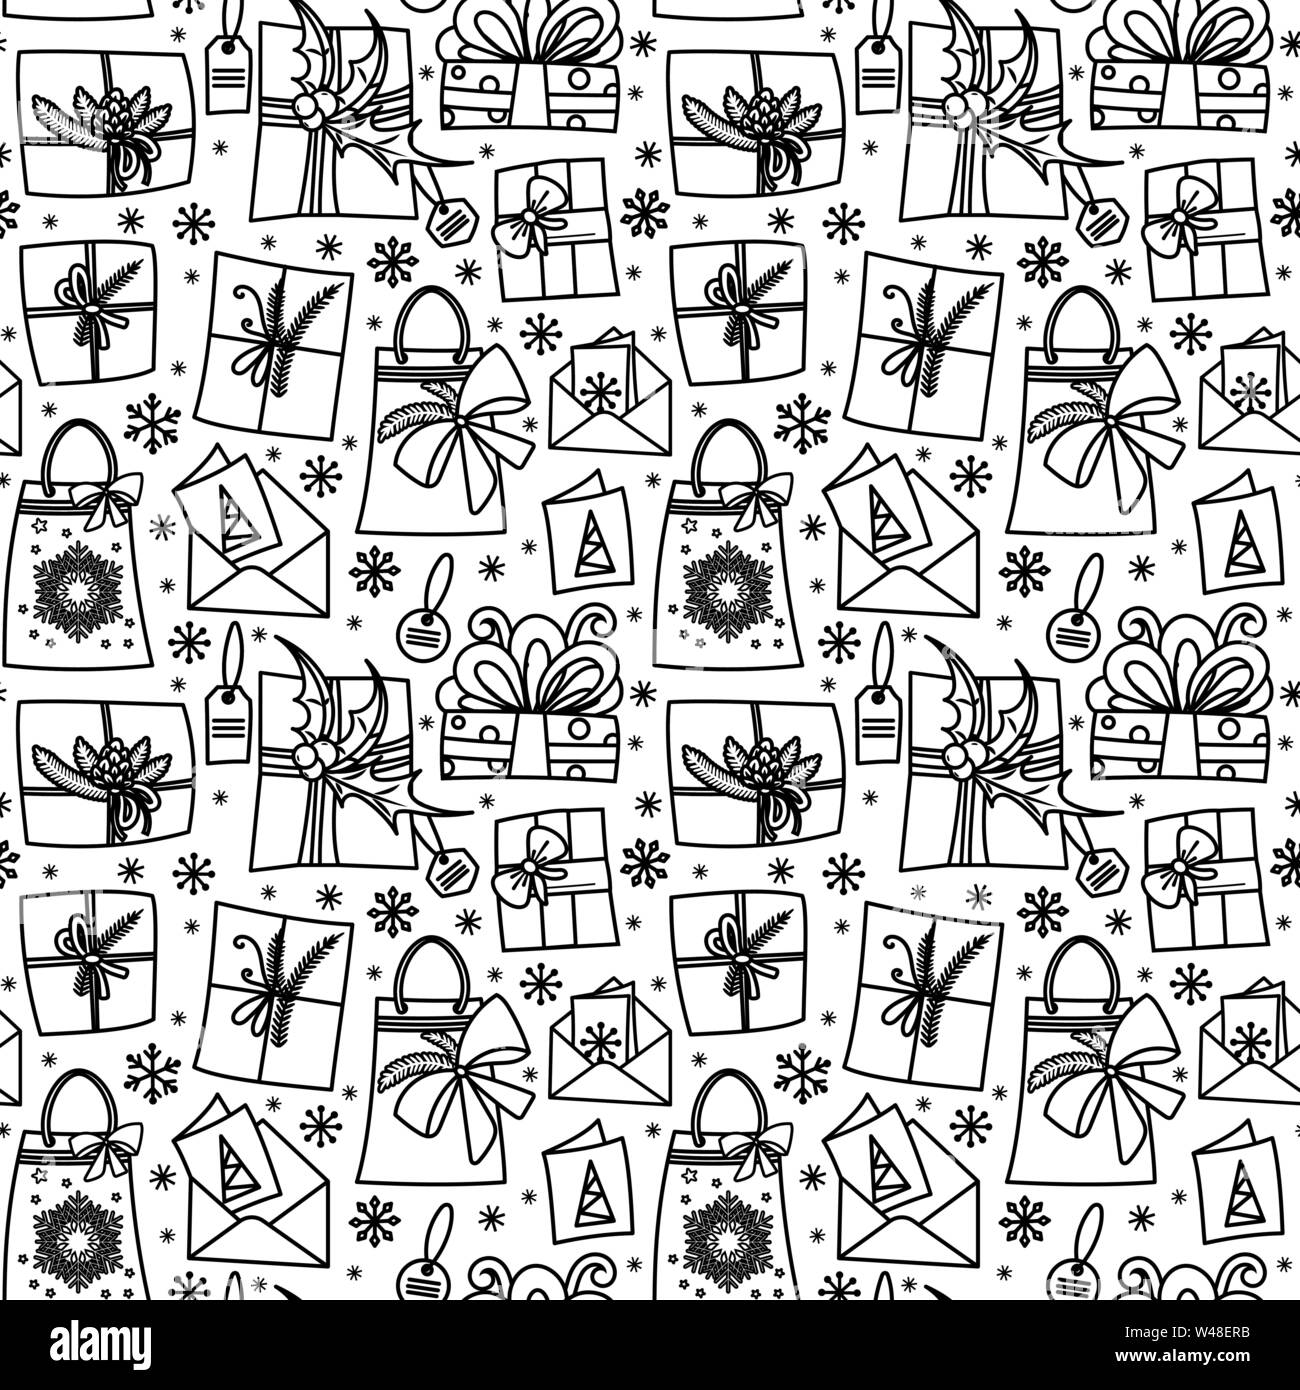 Seamless Pattern With Gift Boxes Ribbons And Bows Winter Holiday Presents In Hand Drawn Doodle Style Black And White Vector Illustration Isolated On White Background Perfect For Coloring Pages Stock Vector Image